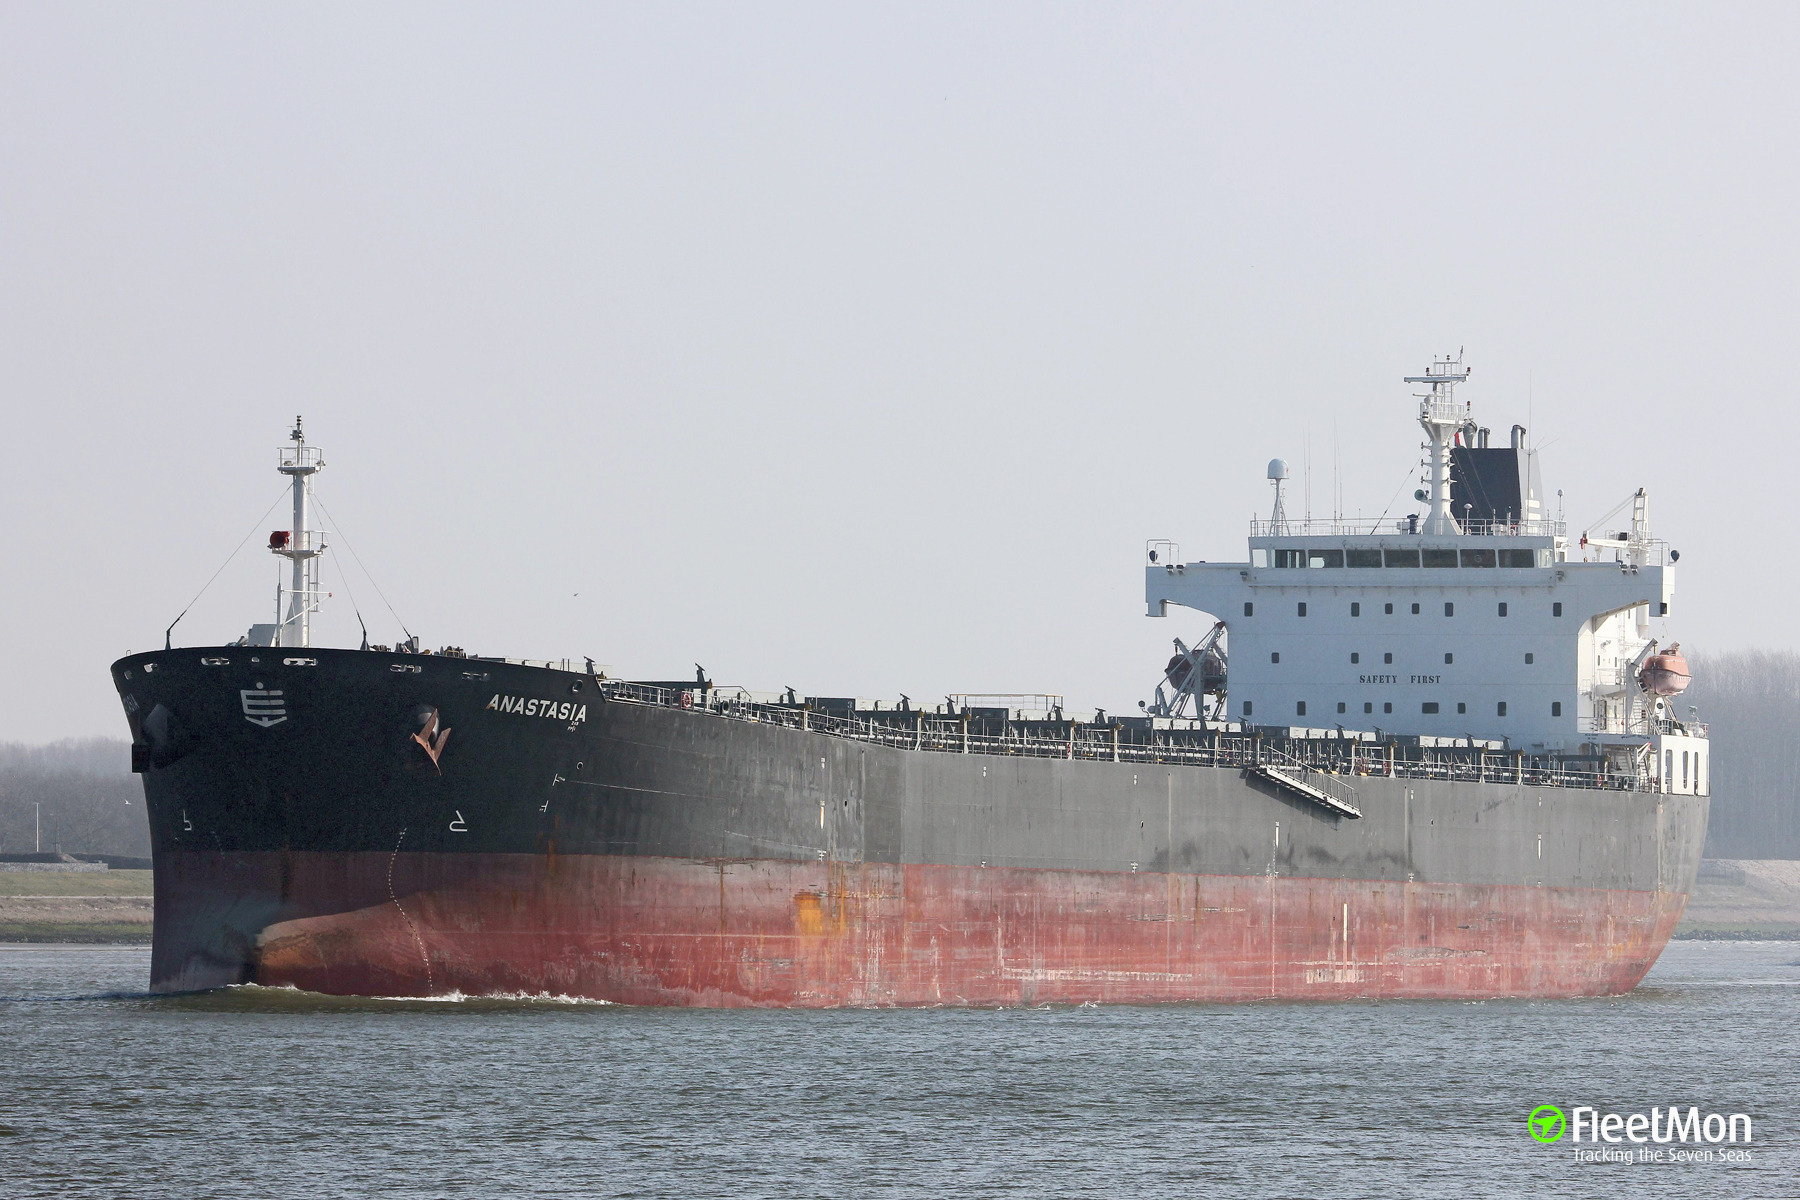 Bulk carrier Anastasia allision in Rostock